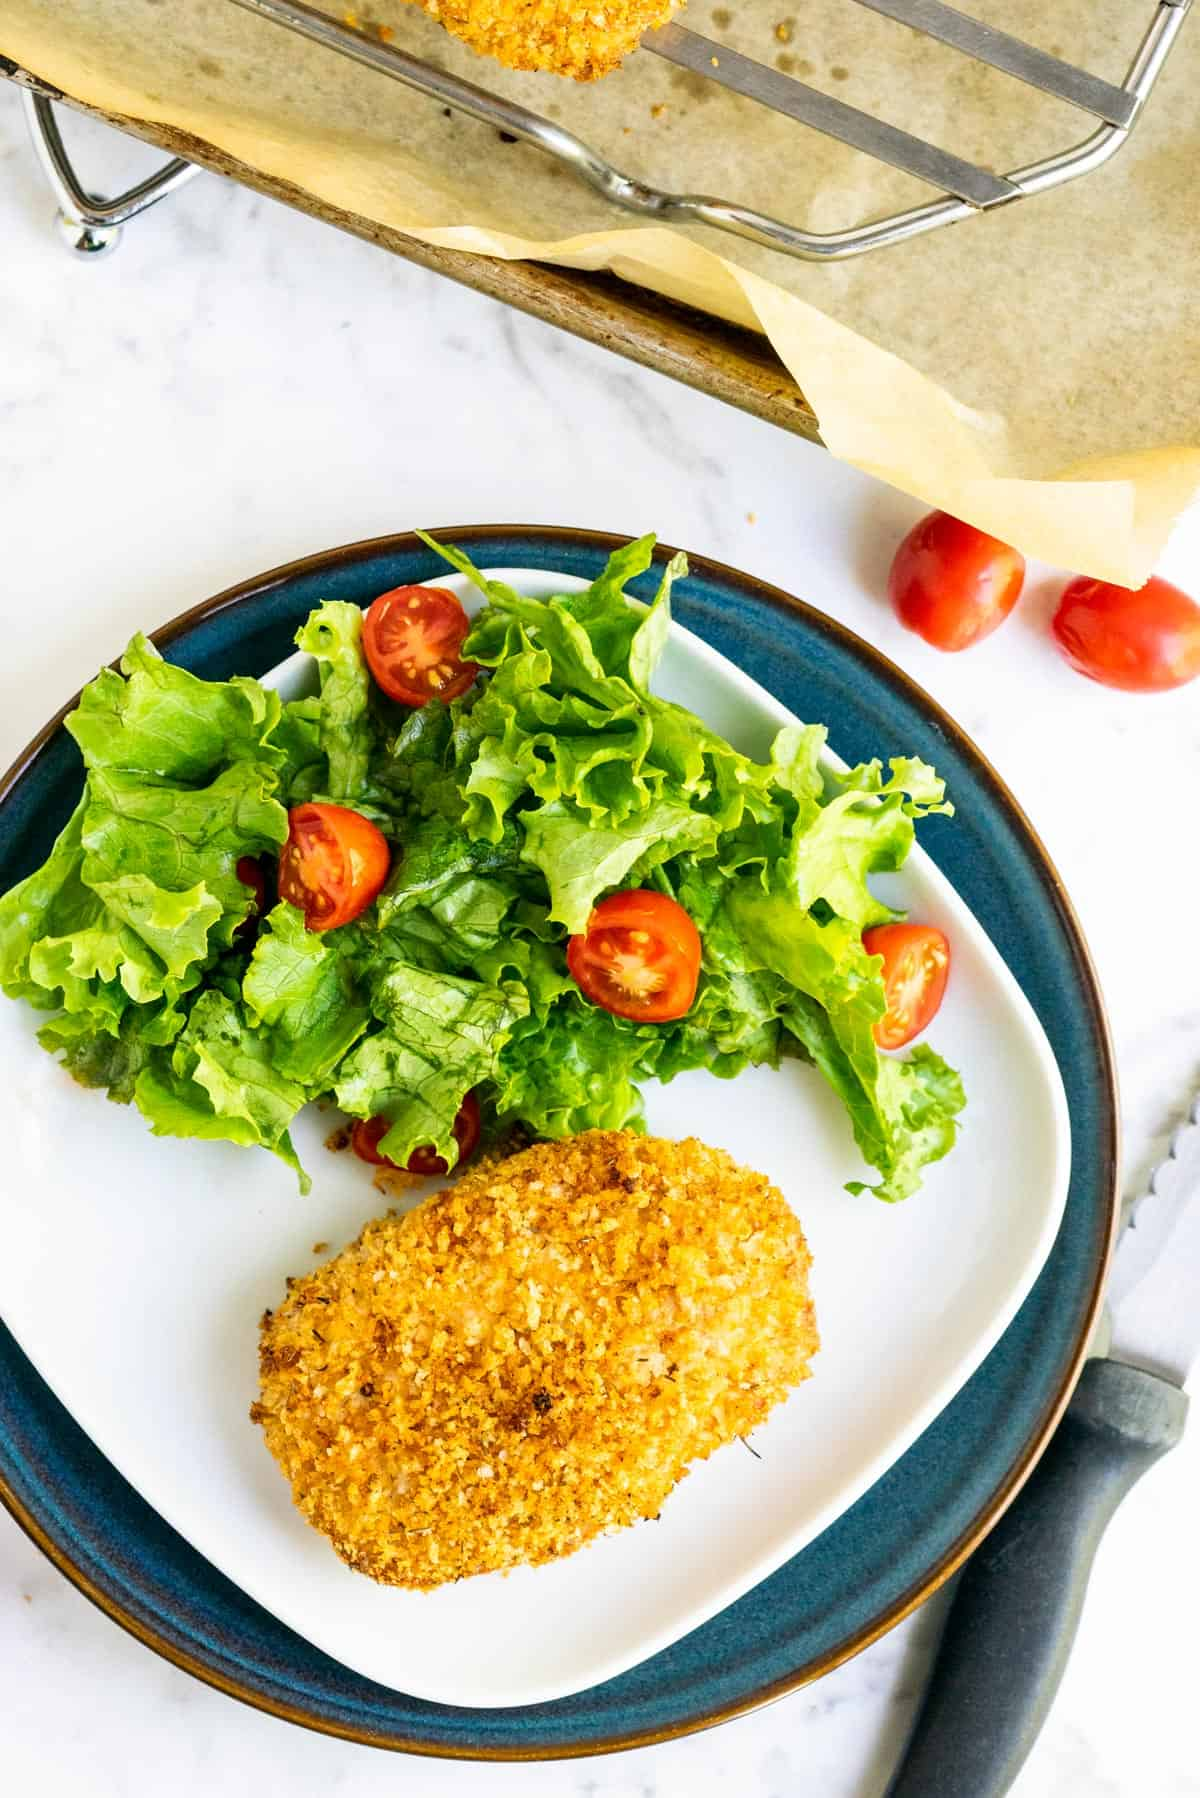 Overhead shot of breaded pork chop on a white plate with a salad